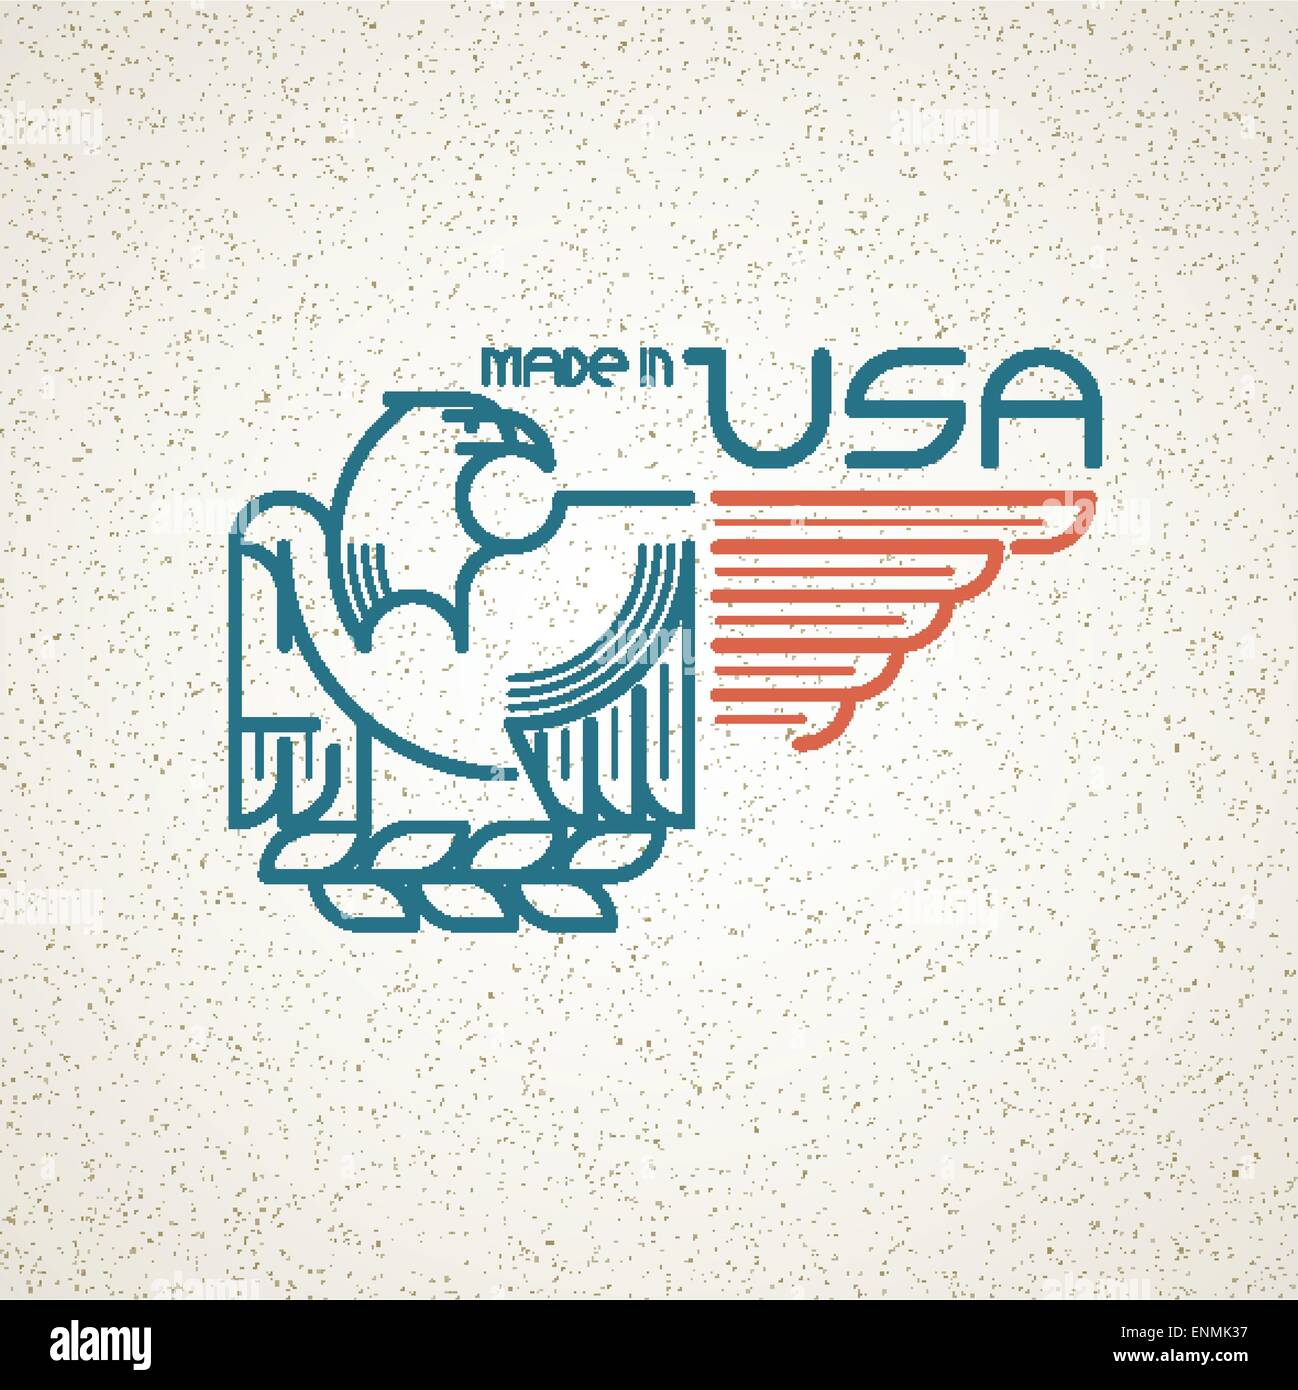 Made in the usa symbol with american flag and eagle templates made in the usa symbol with american flag and eagle templates emblems vector illustration eps 10 buycottarizona